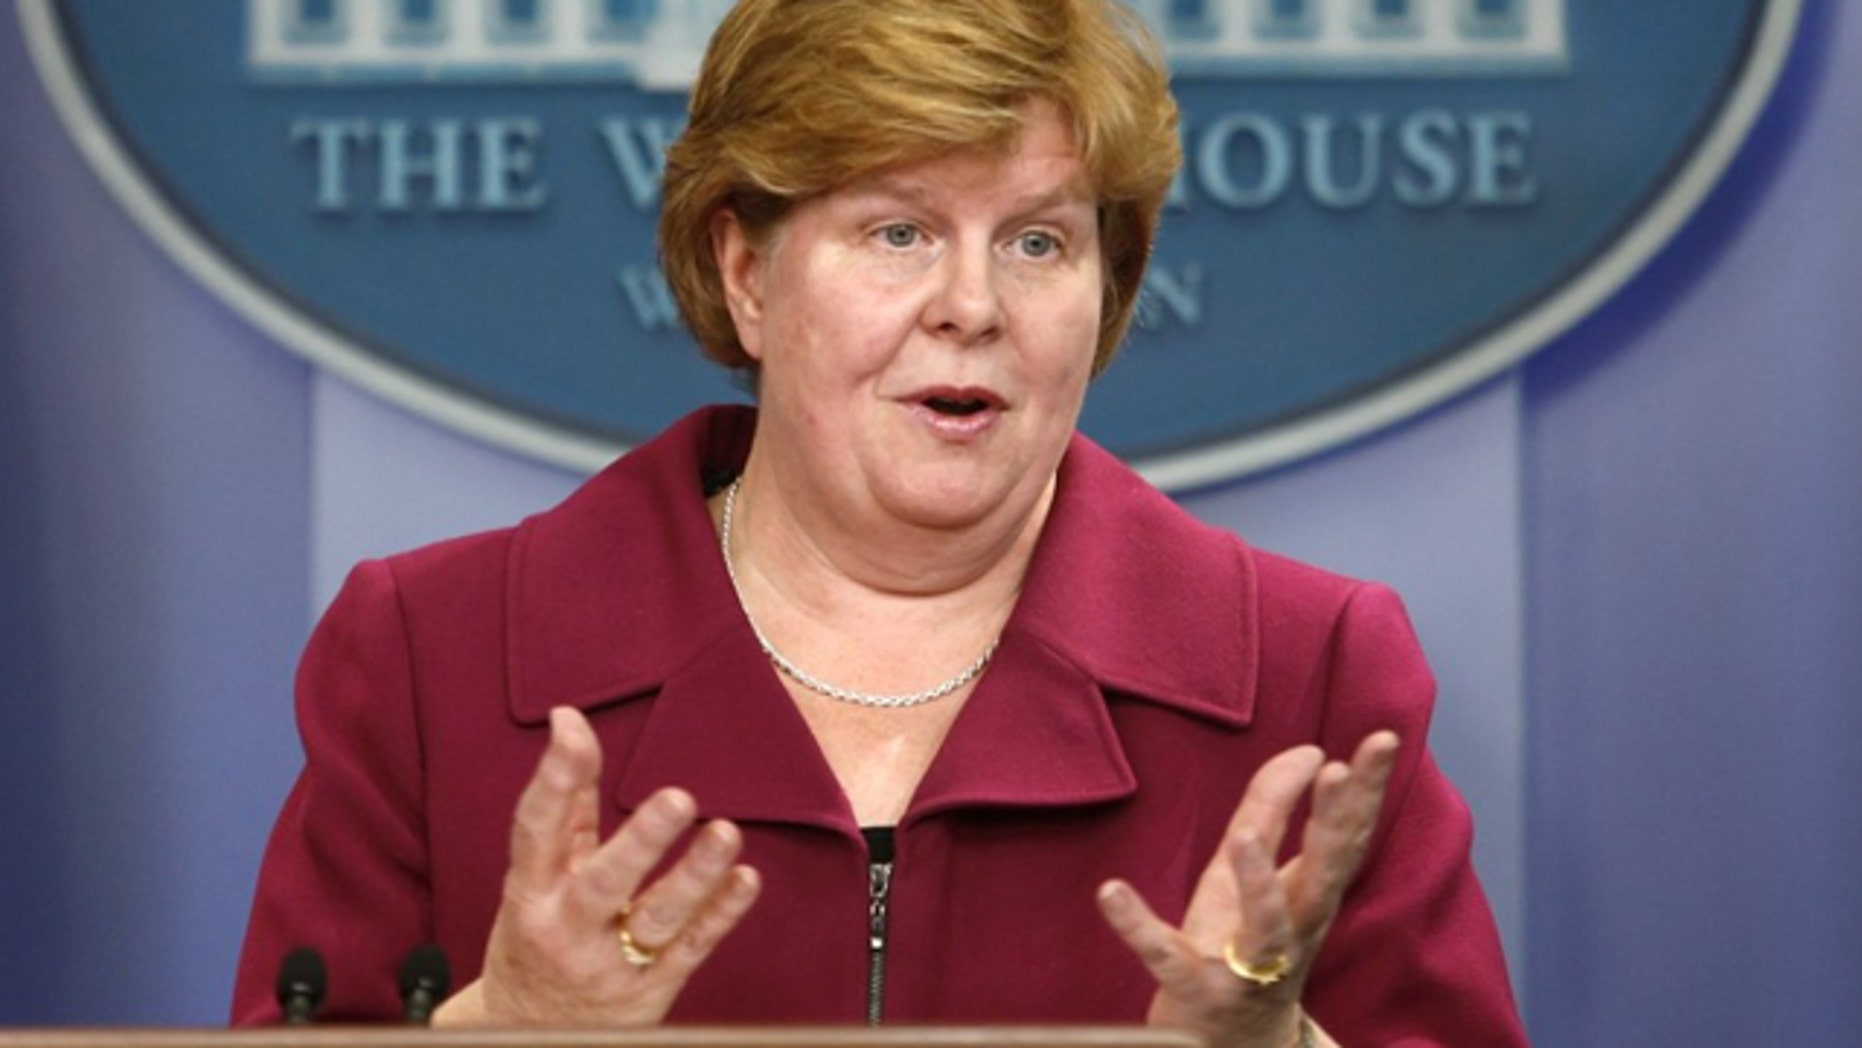 Christina Romer, seen in this February 2010 file photo, plans to step down in September as chairwoman of President Obama's Council of Economic Advisers.